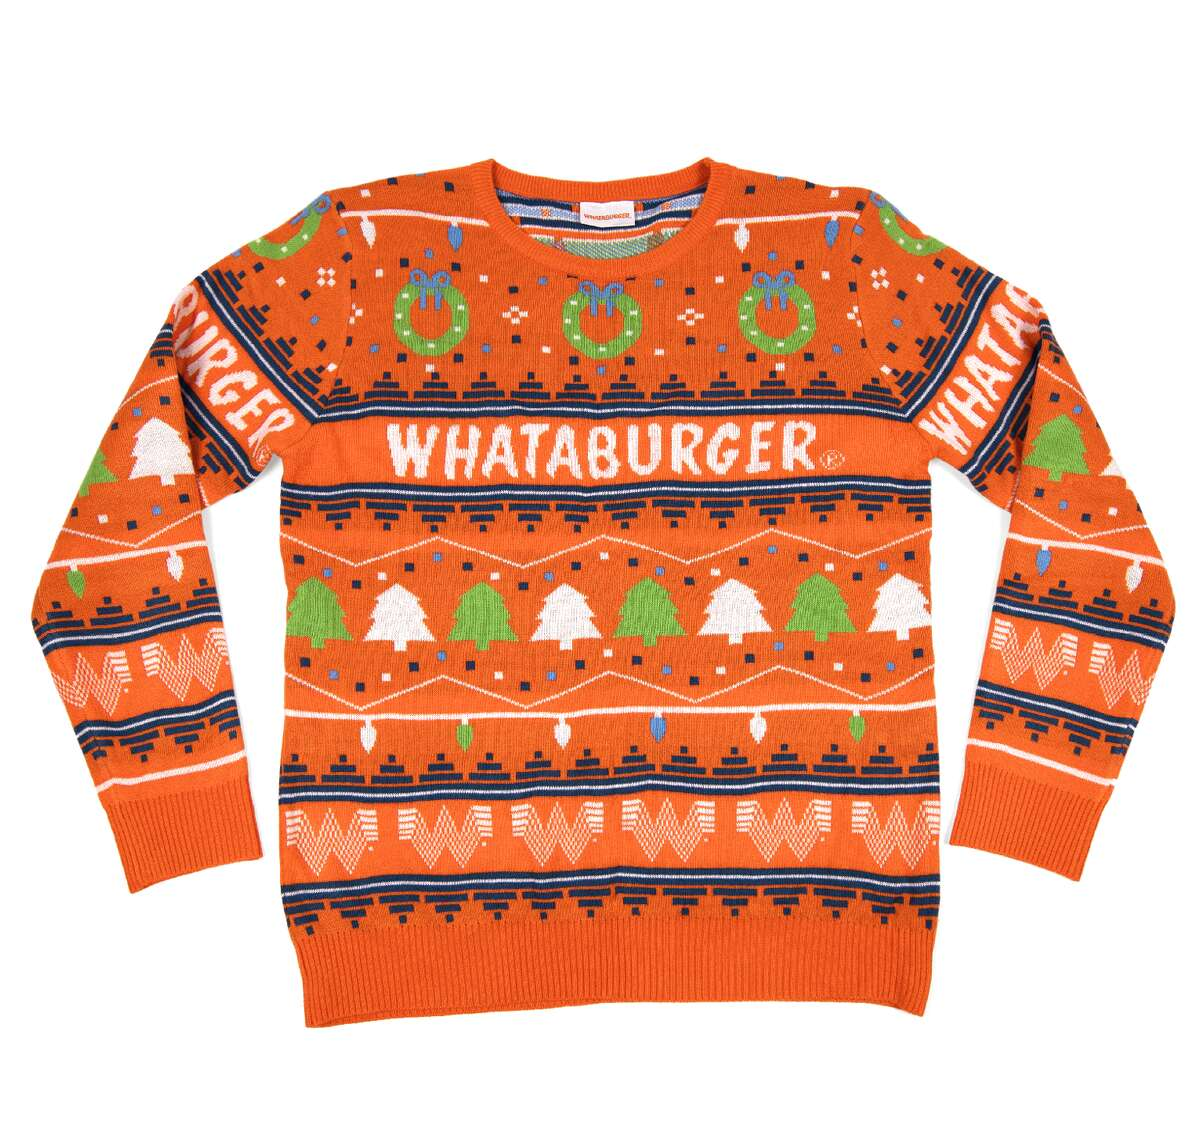 What a sweater.